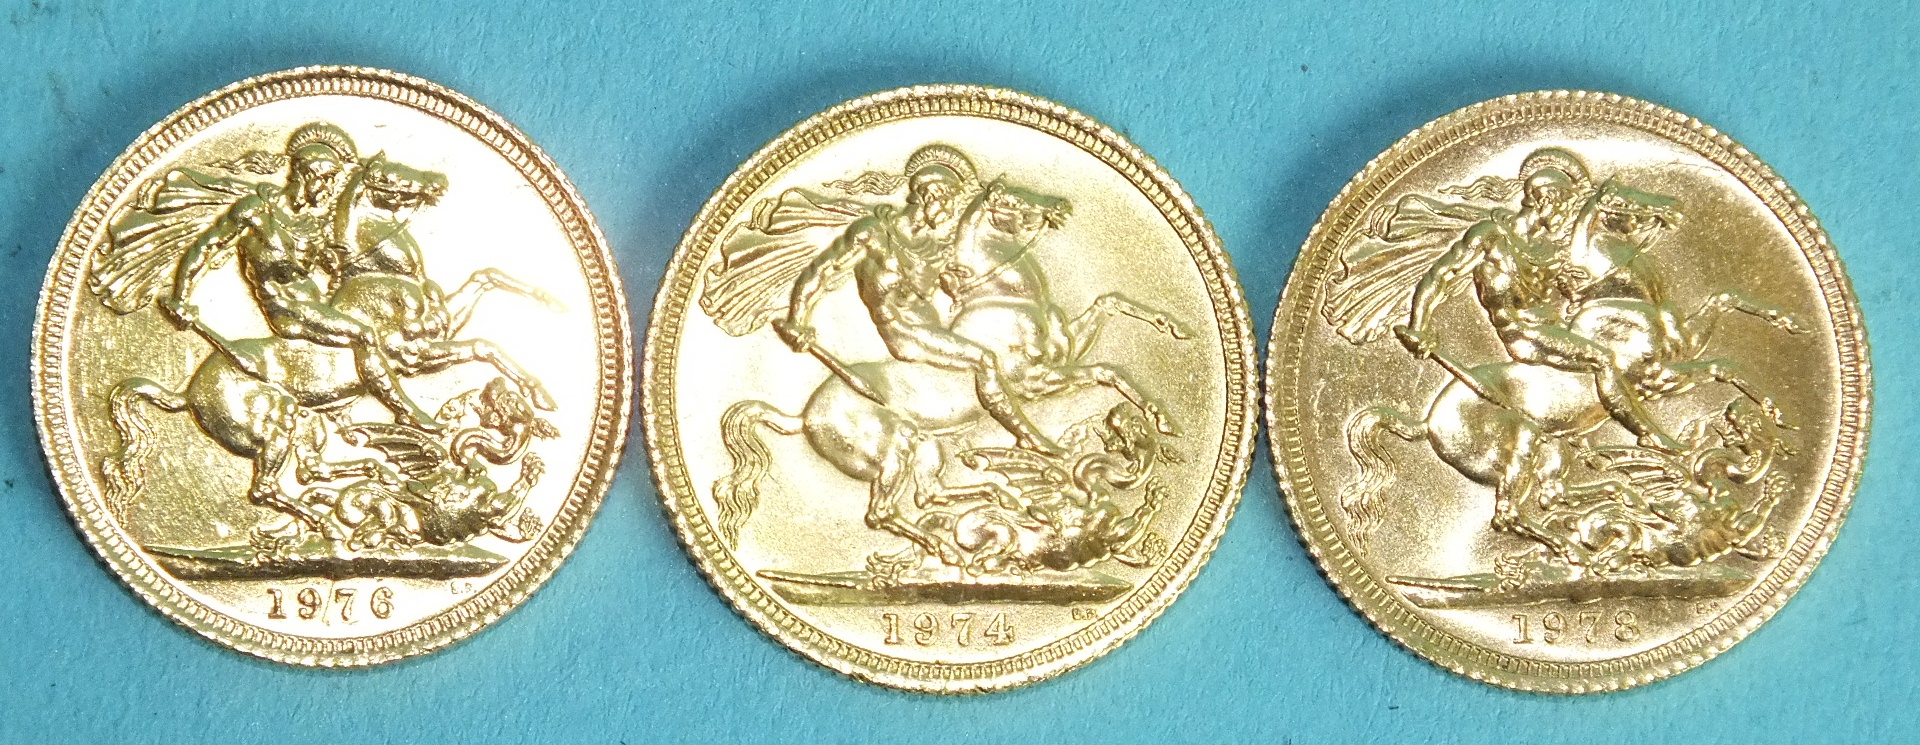 Lot 381 - Three Elizabeth II sovereigns, 1974, 1976 and 1978, (3).